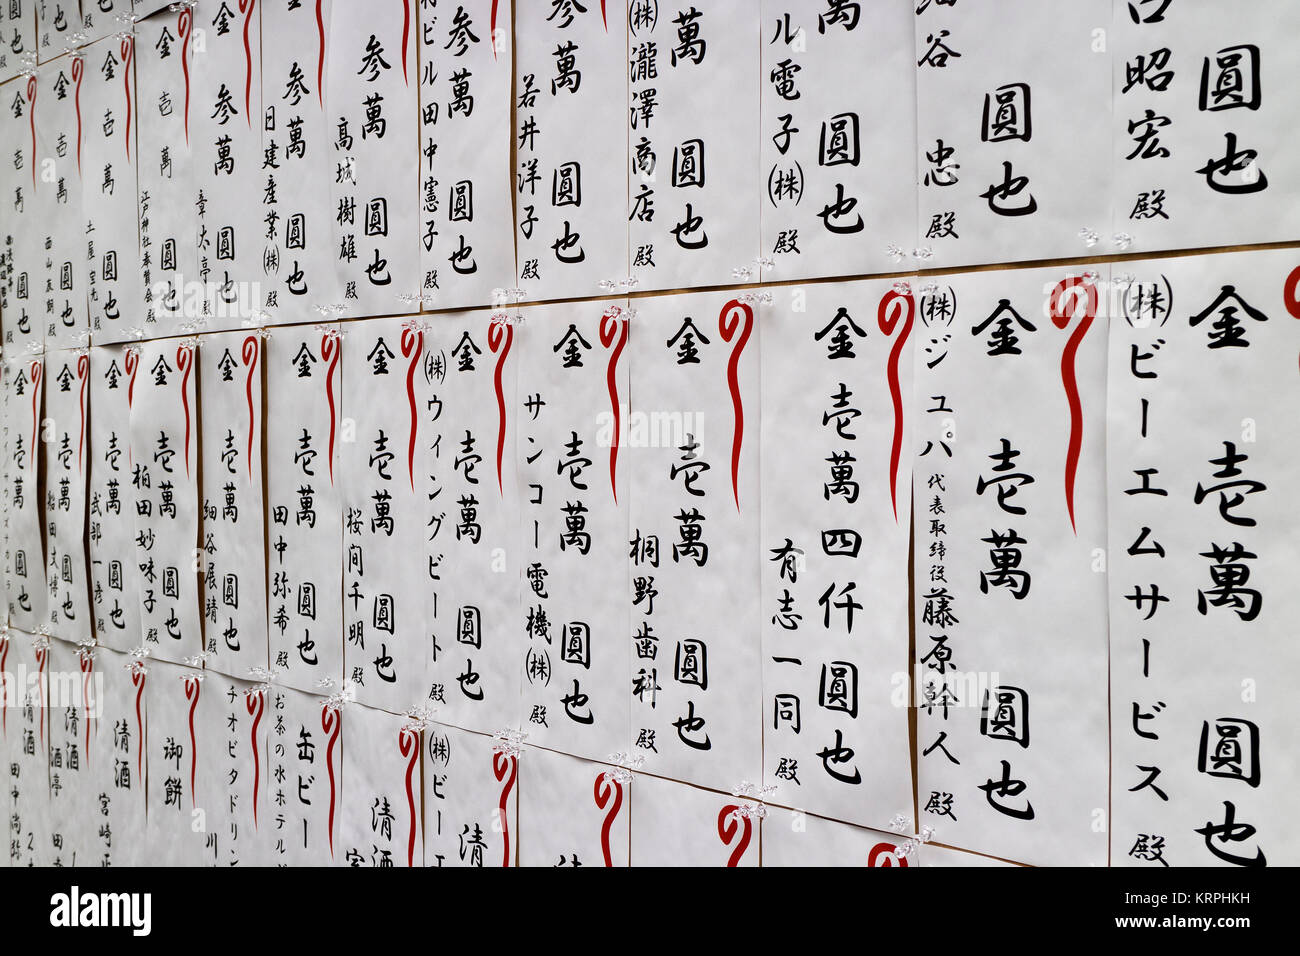 Tokyo, Japan - May 14,2017: Names of sponors written on papers in Japanese language on the street at the Kanda Matsuri - Stock Image